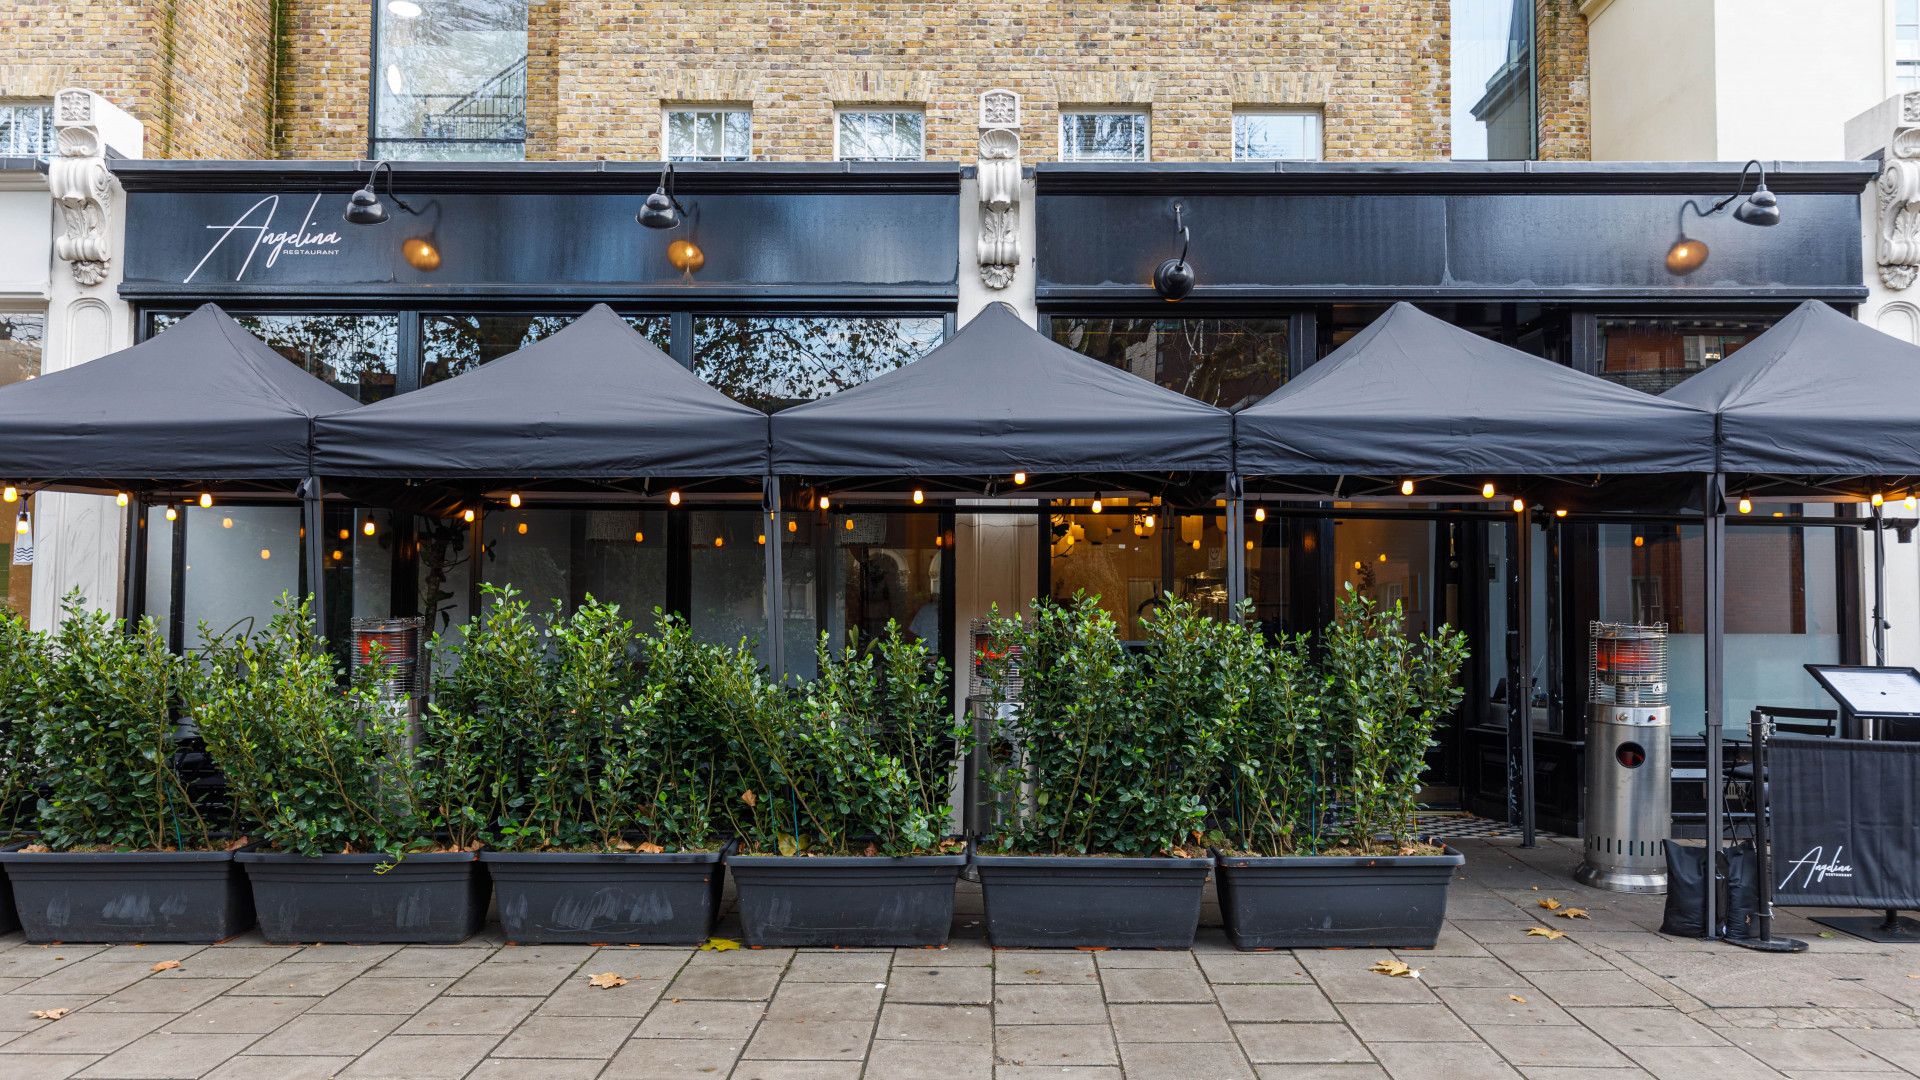 This is an image of the outdoor seating at Angelina in Dalston, London.